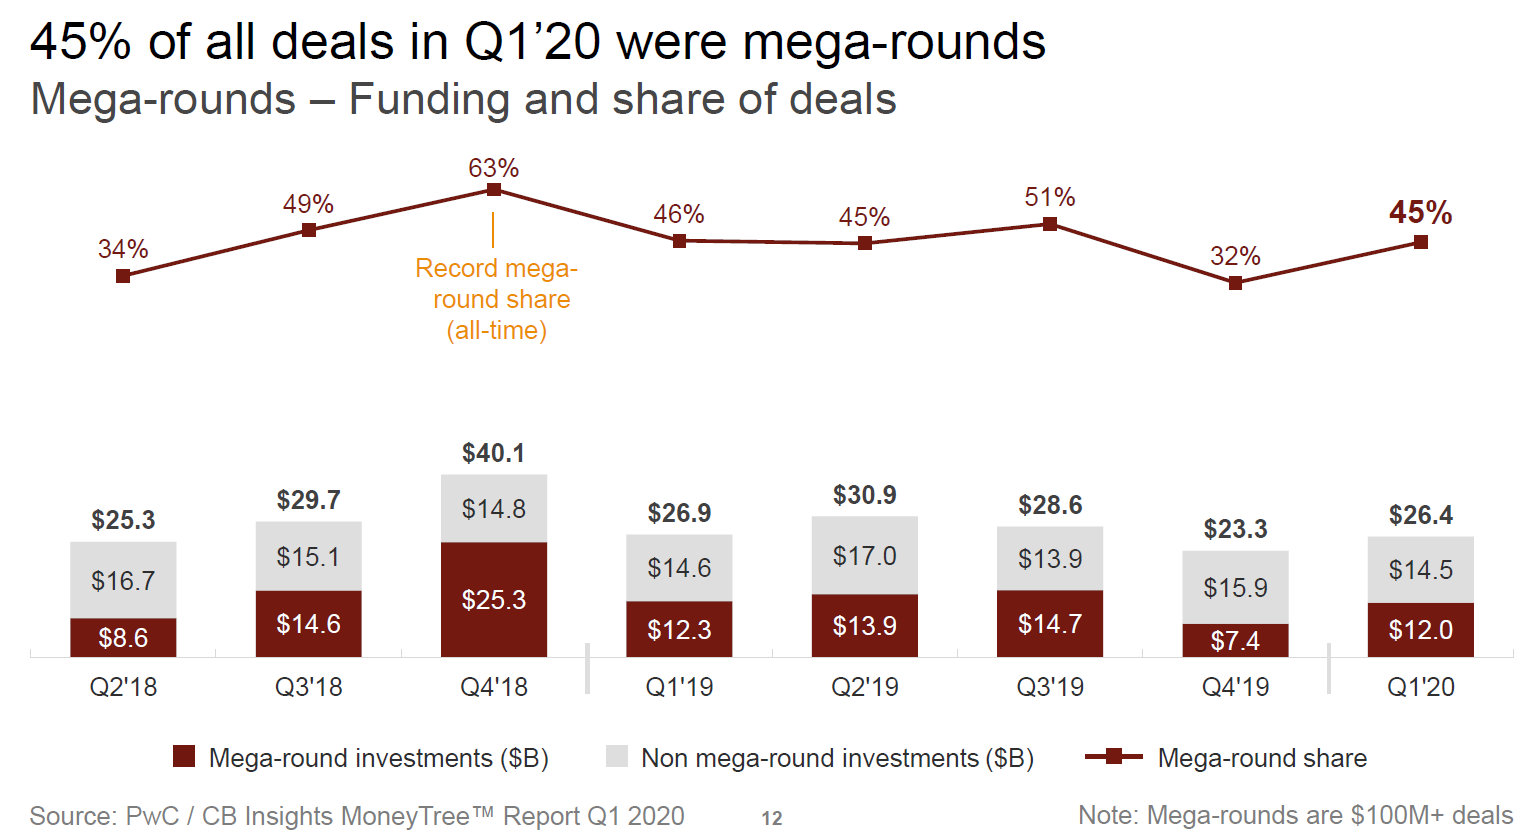 Charts Seed deals see steep decline in Q`20 and chart 45% of all deals in Q1`20 were mega-rounds